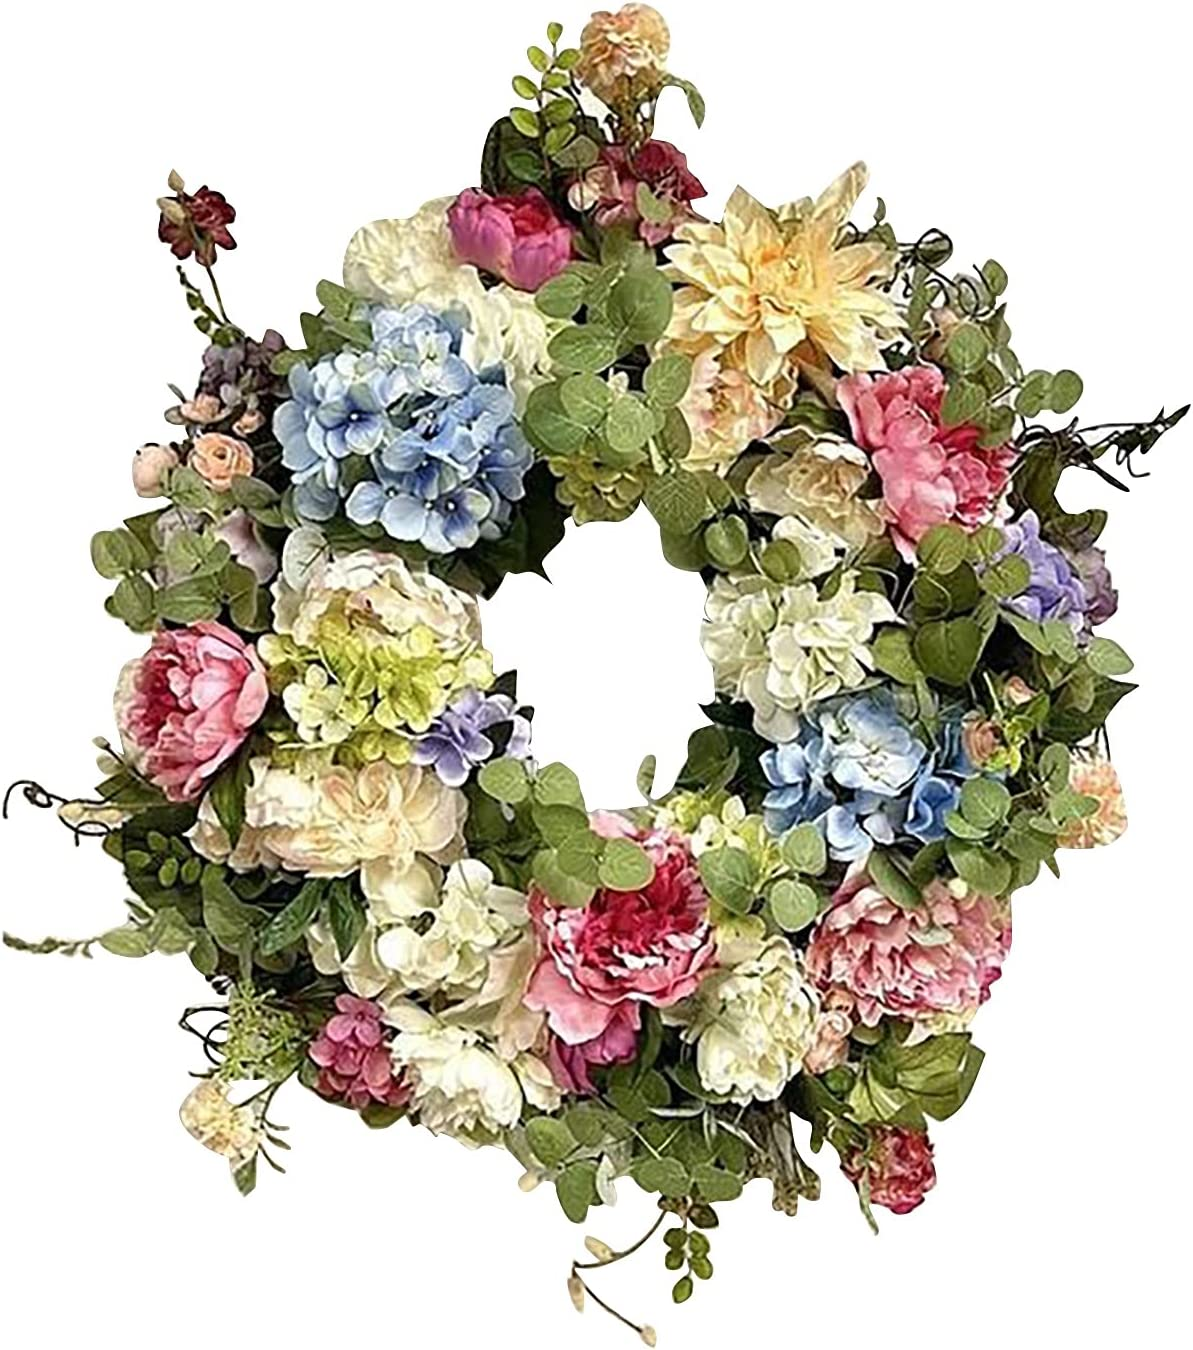 rui All items in the store tai Elegant Artificial Wreaths Christmas Colorful Wreath Simulation